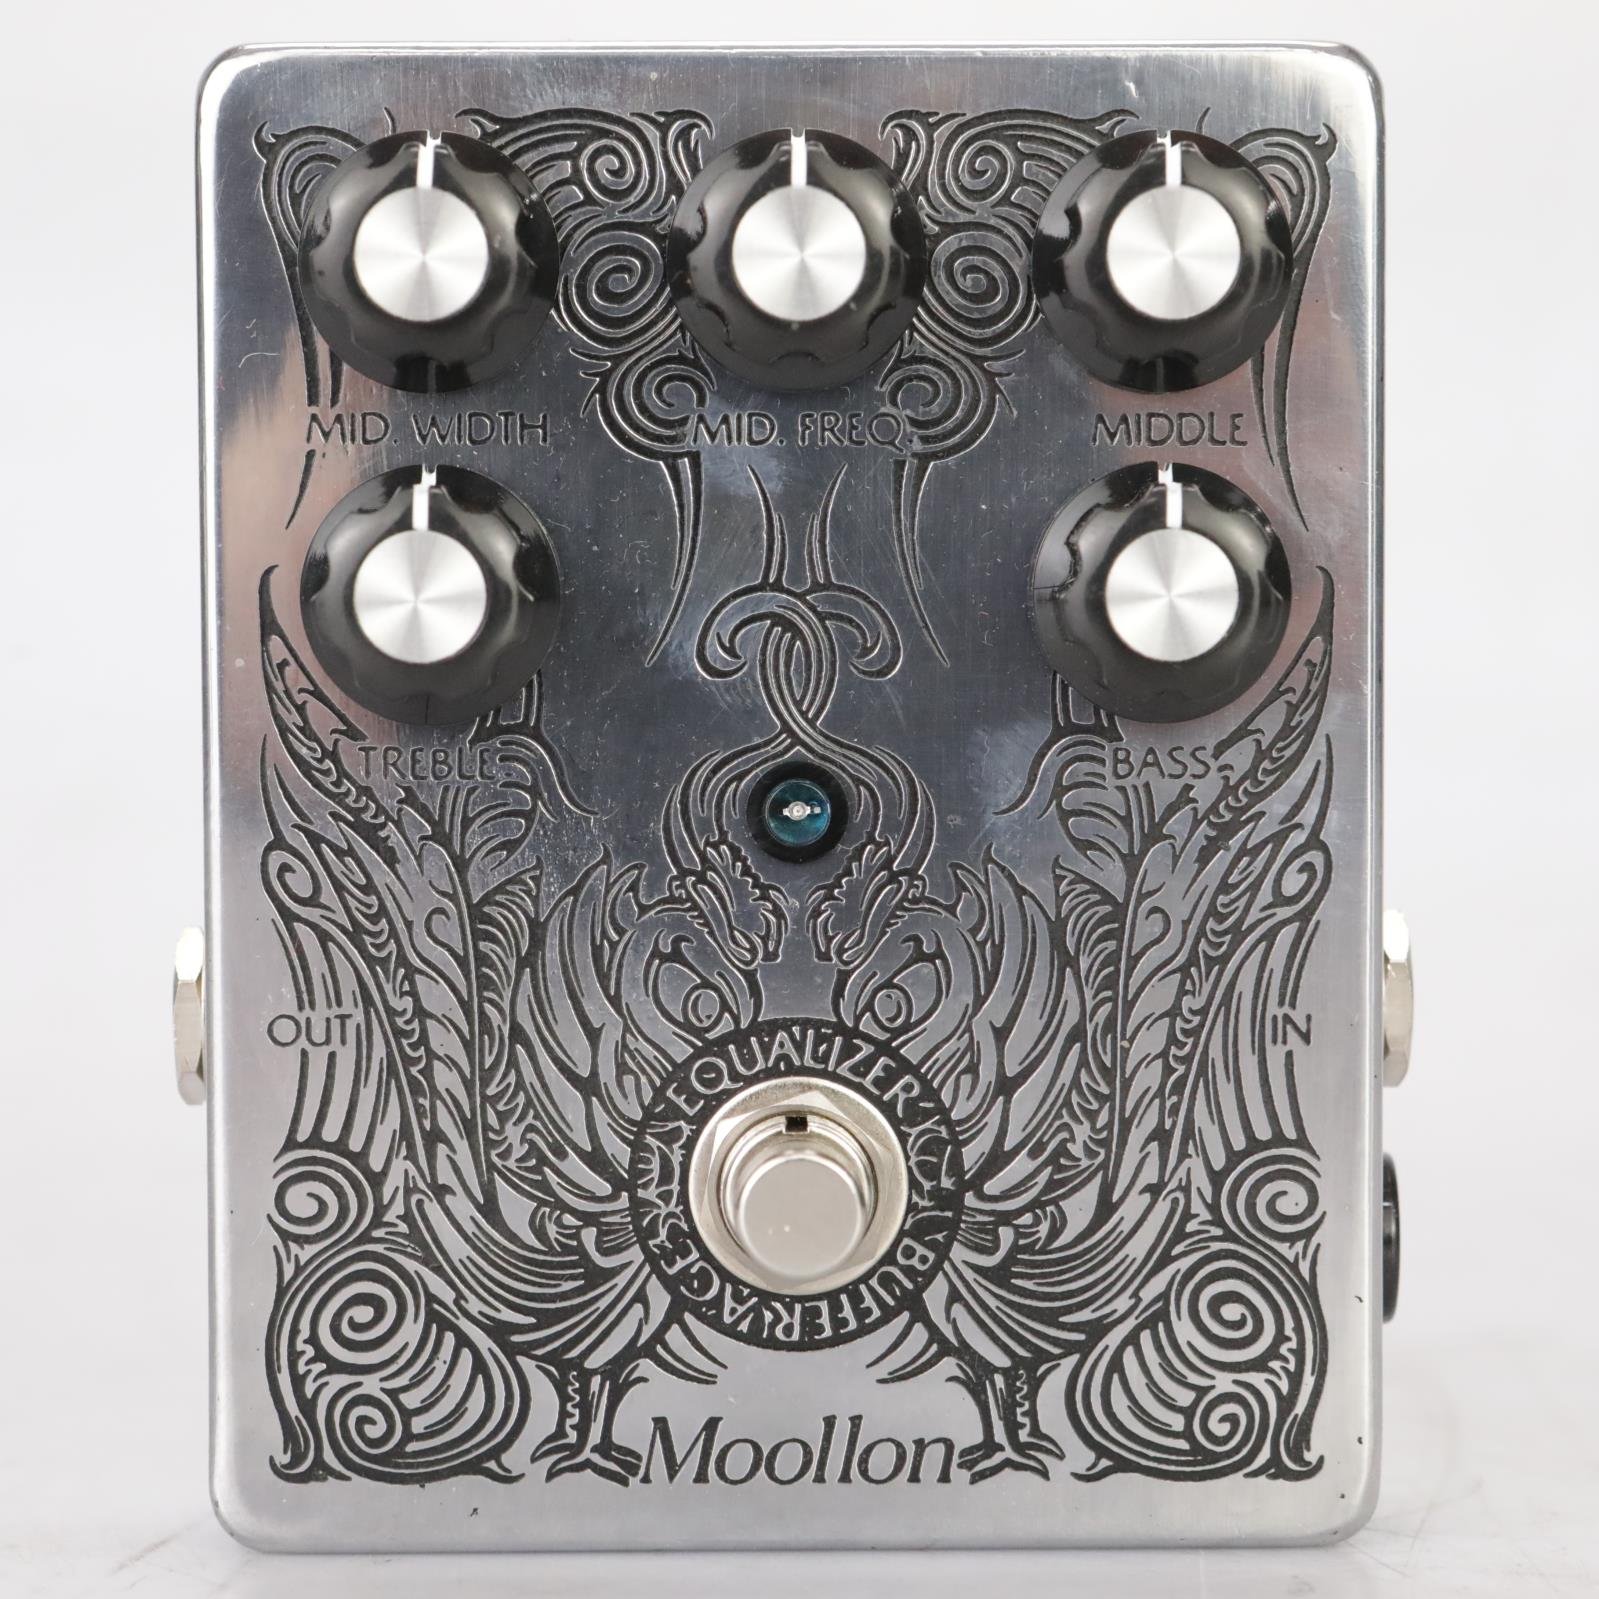 Moollon Parametric Equalizer Stompbox Pedal w/ Box Owned by Leland Sklar #38854